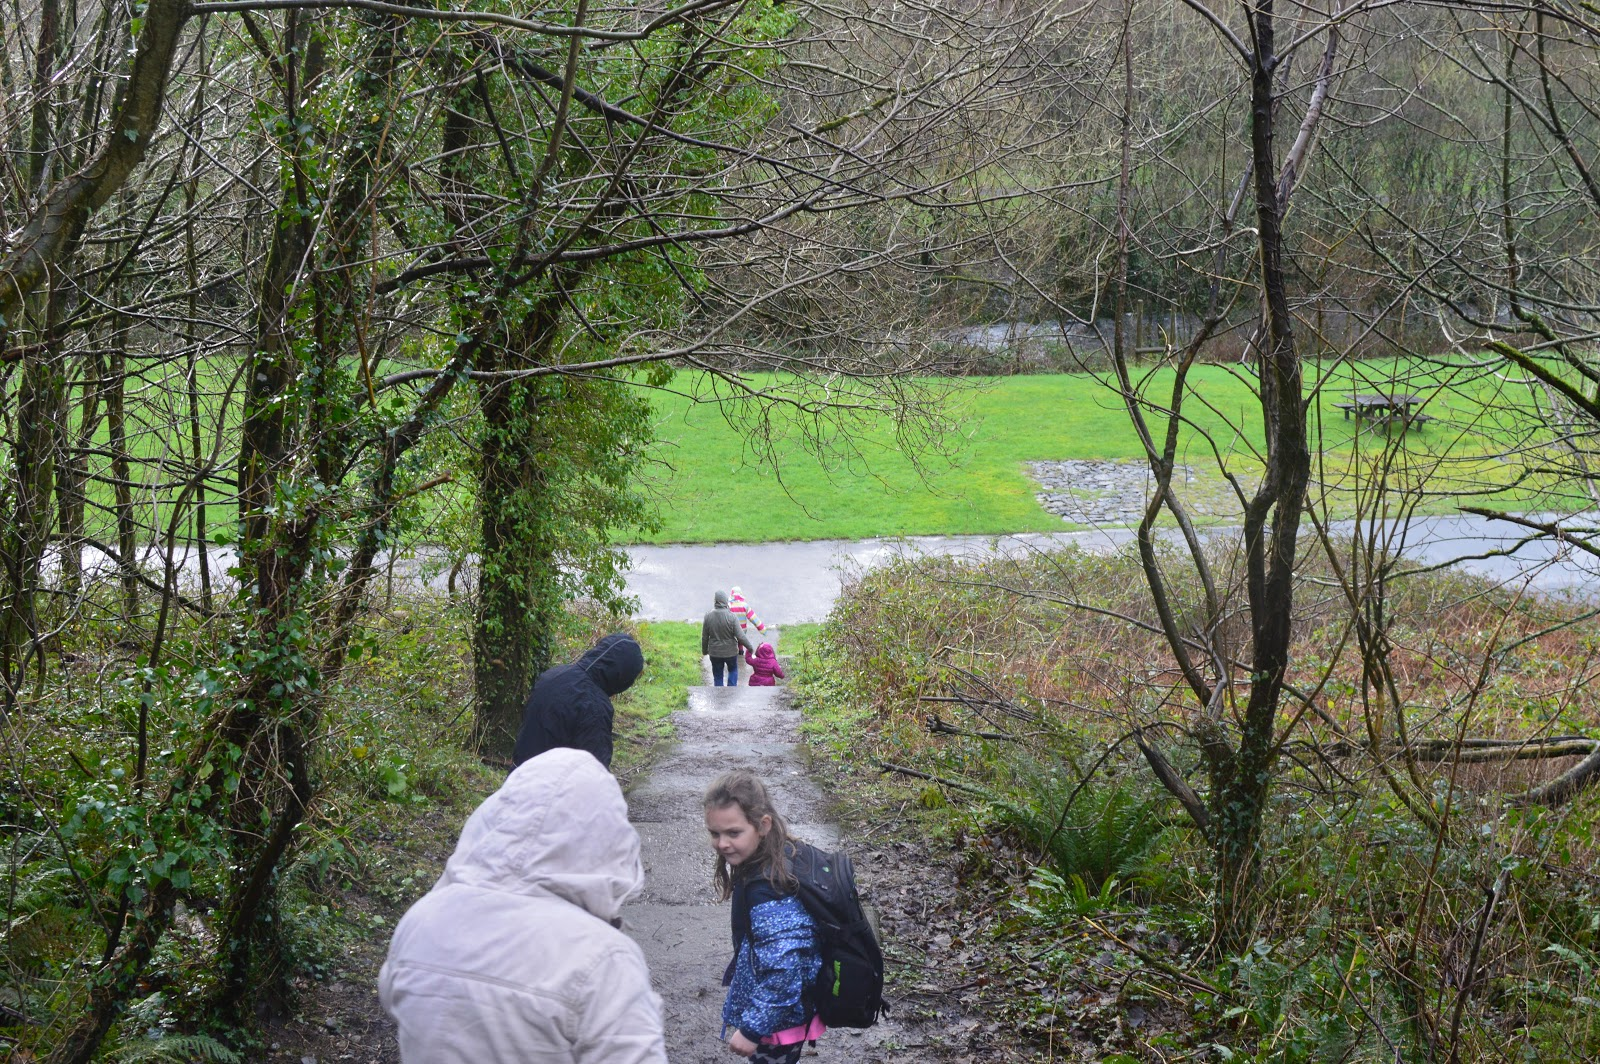 , Days Out:  Llys y Fran, Country Park and Reservoir Pembrokeshire